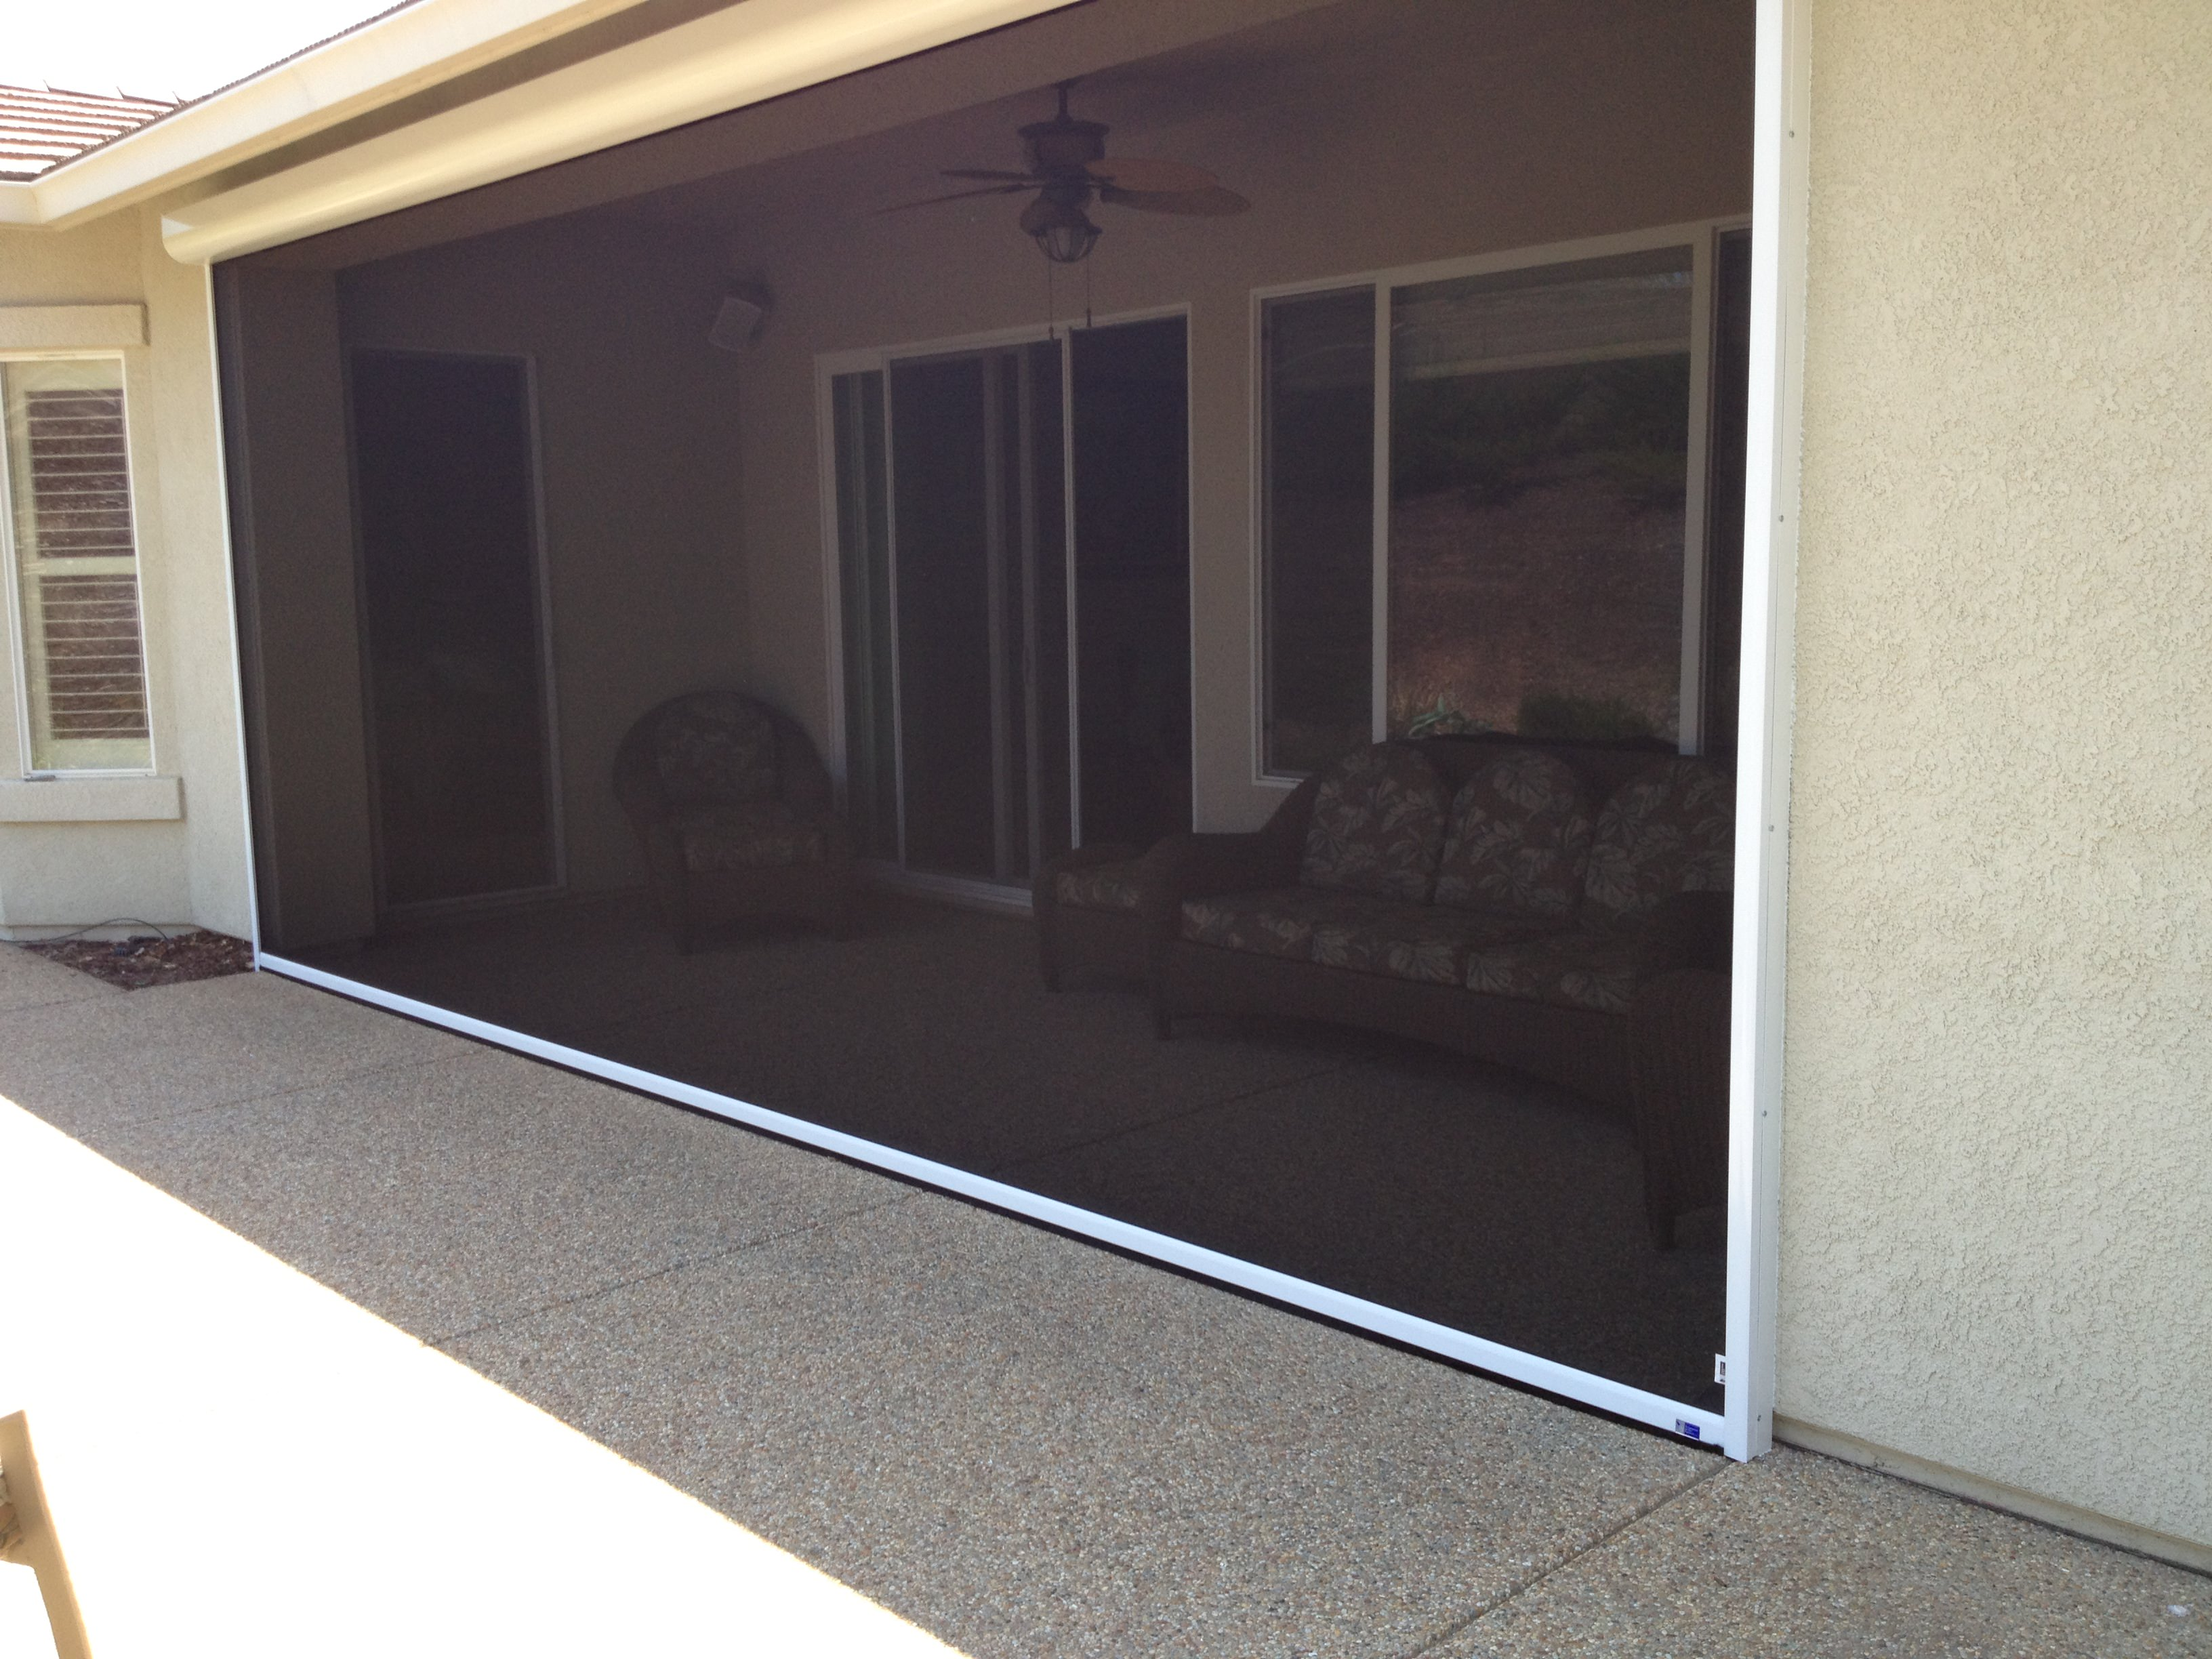 Motorized screen doors image of garage door screen kits for Motorized garage door screens